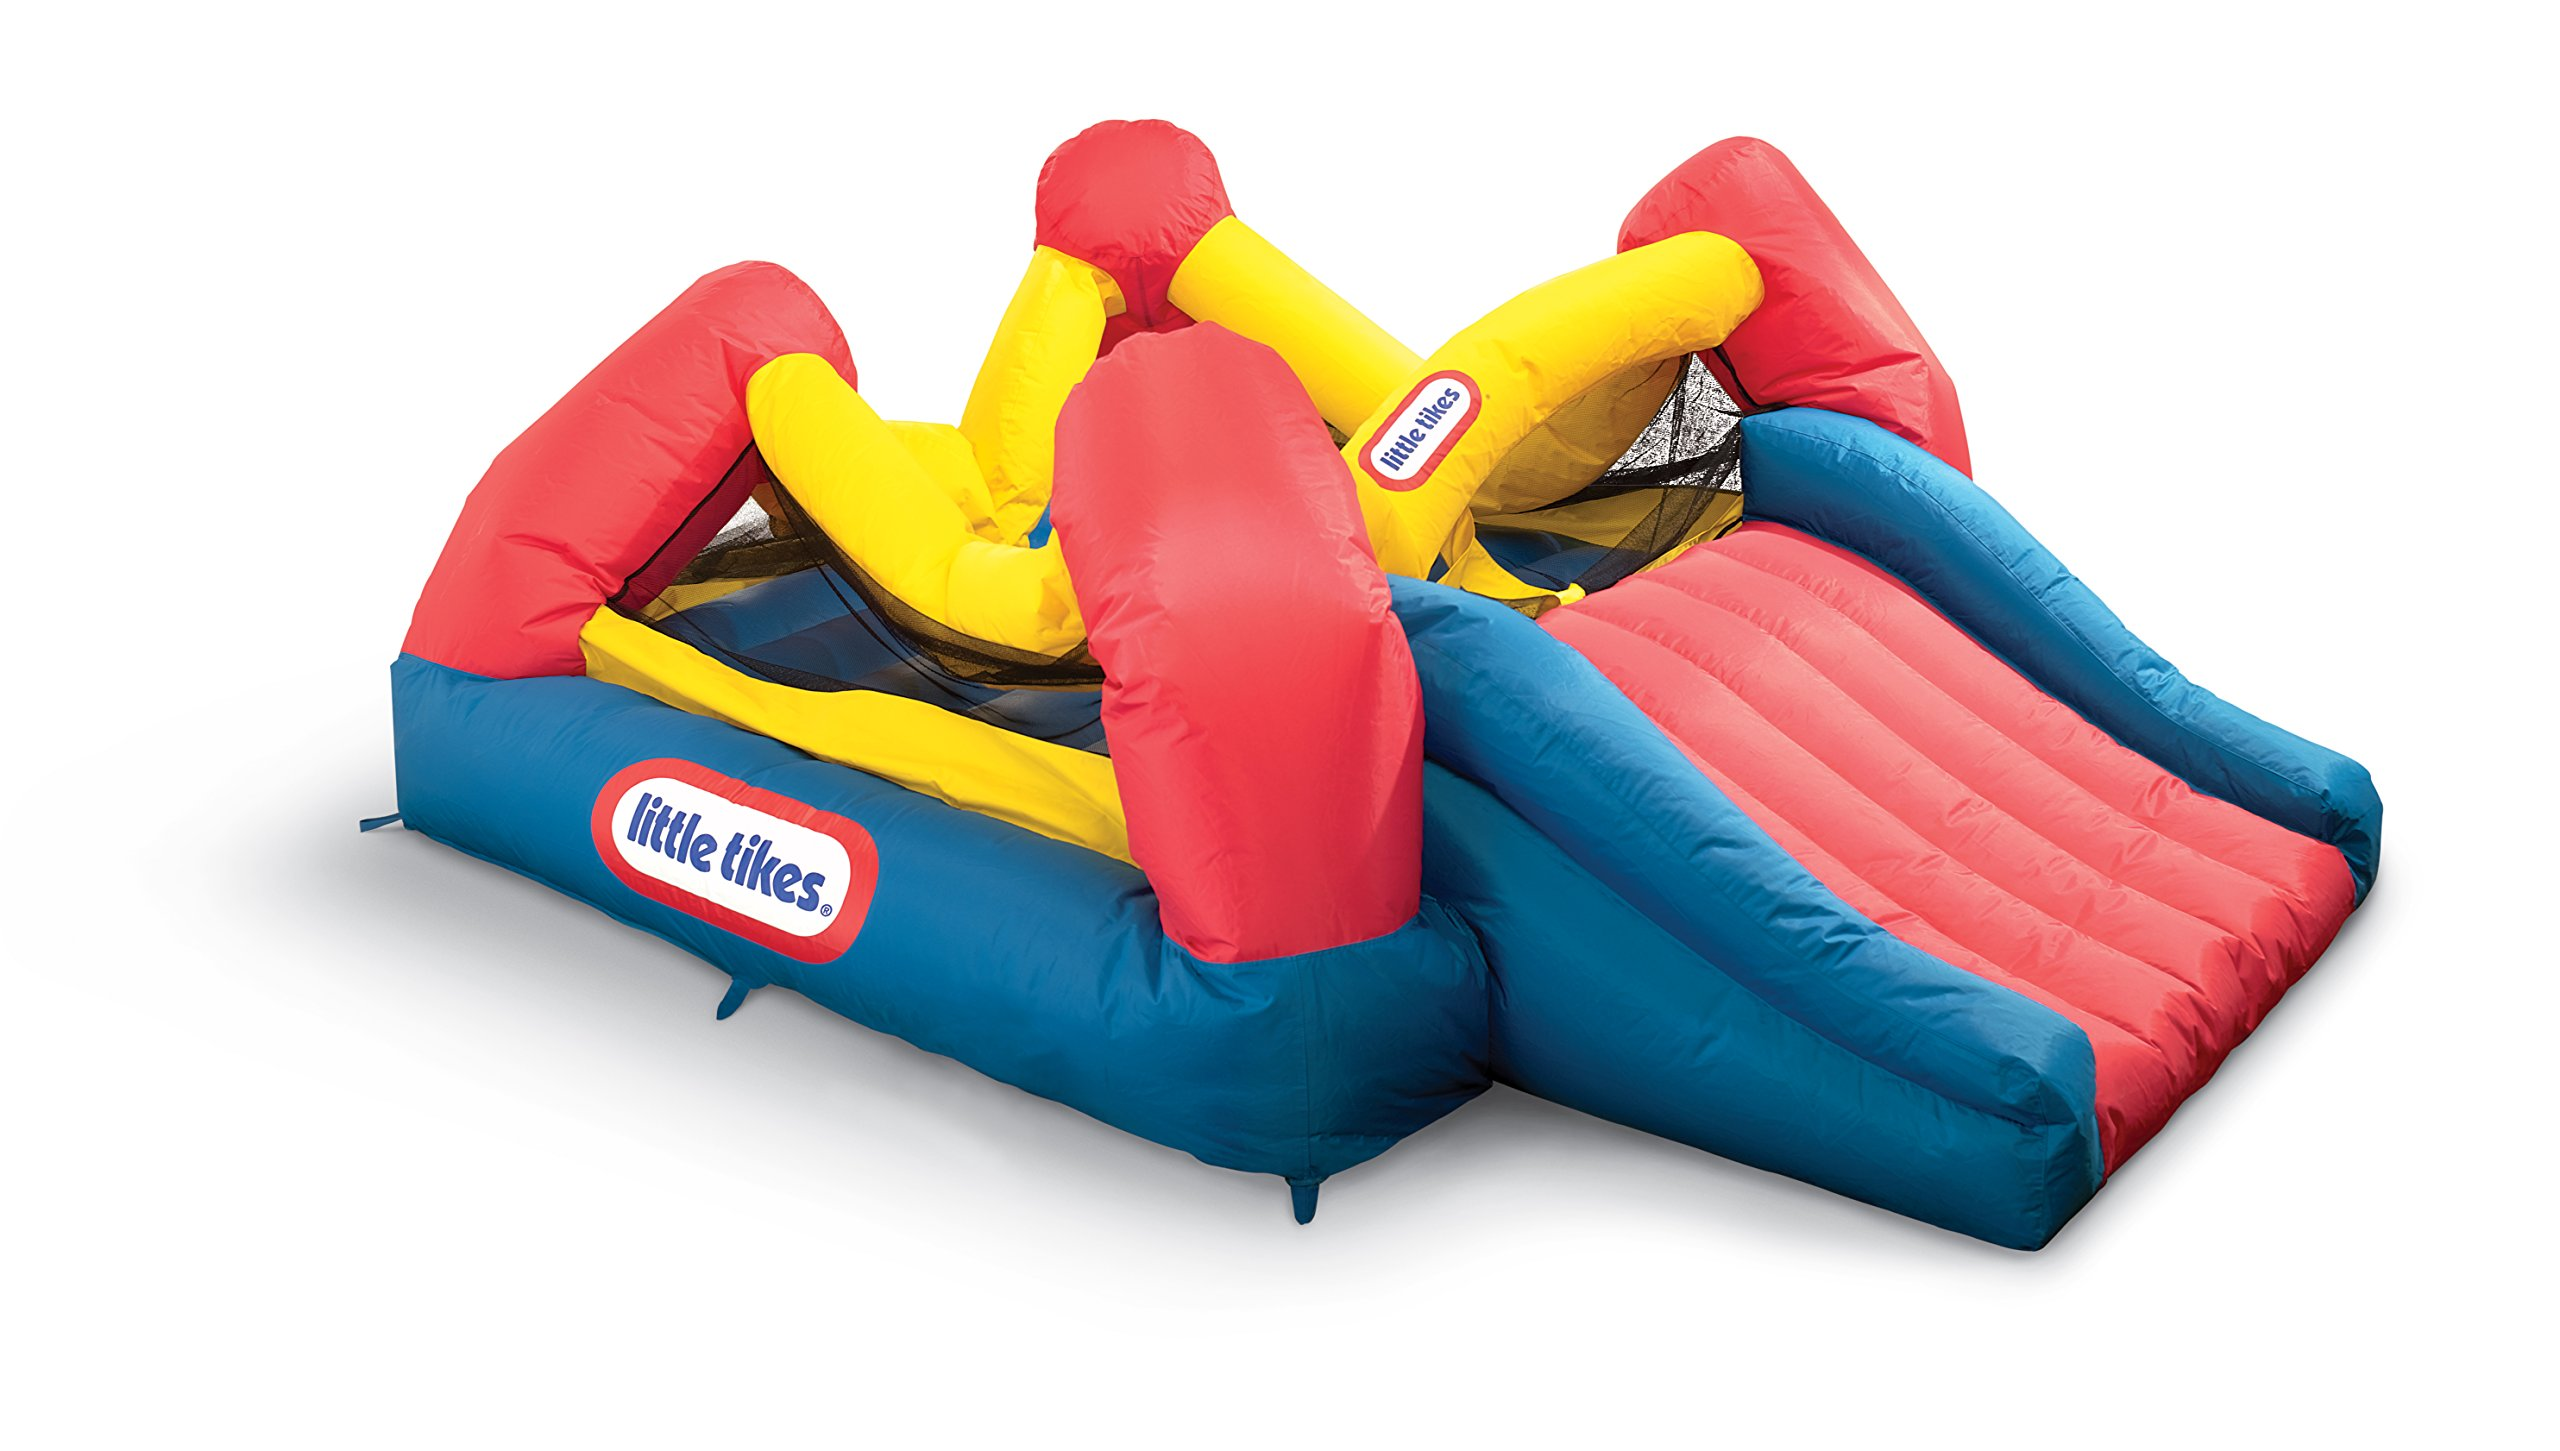 Little Tikes Inflatable Jump 'n Slide Bounce House w/heavy duty blower by Little Tikes (Image #8)